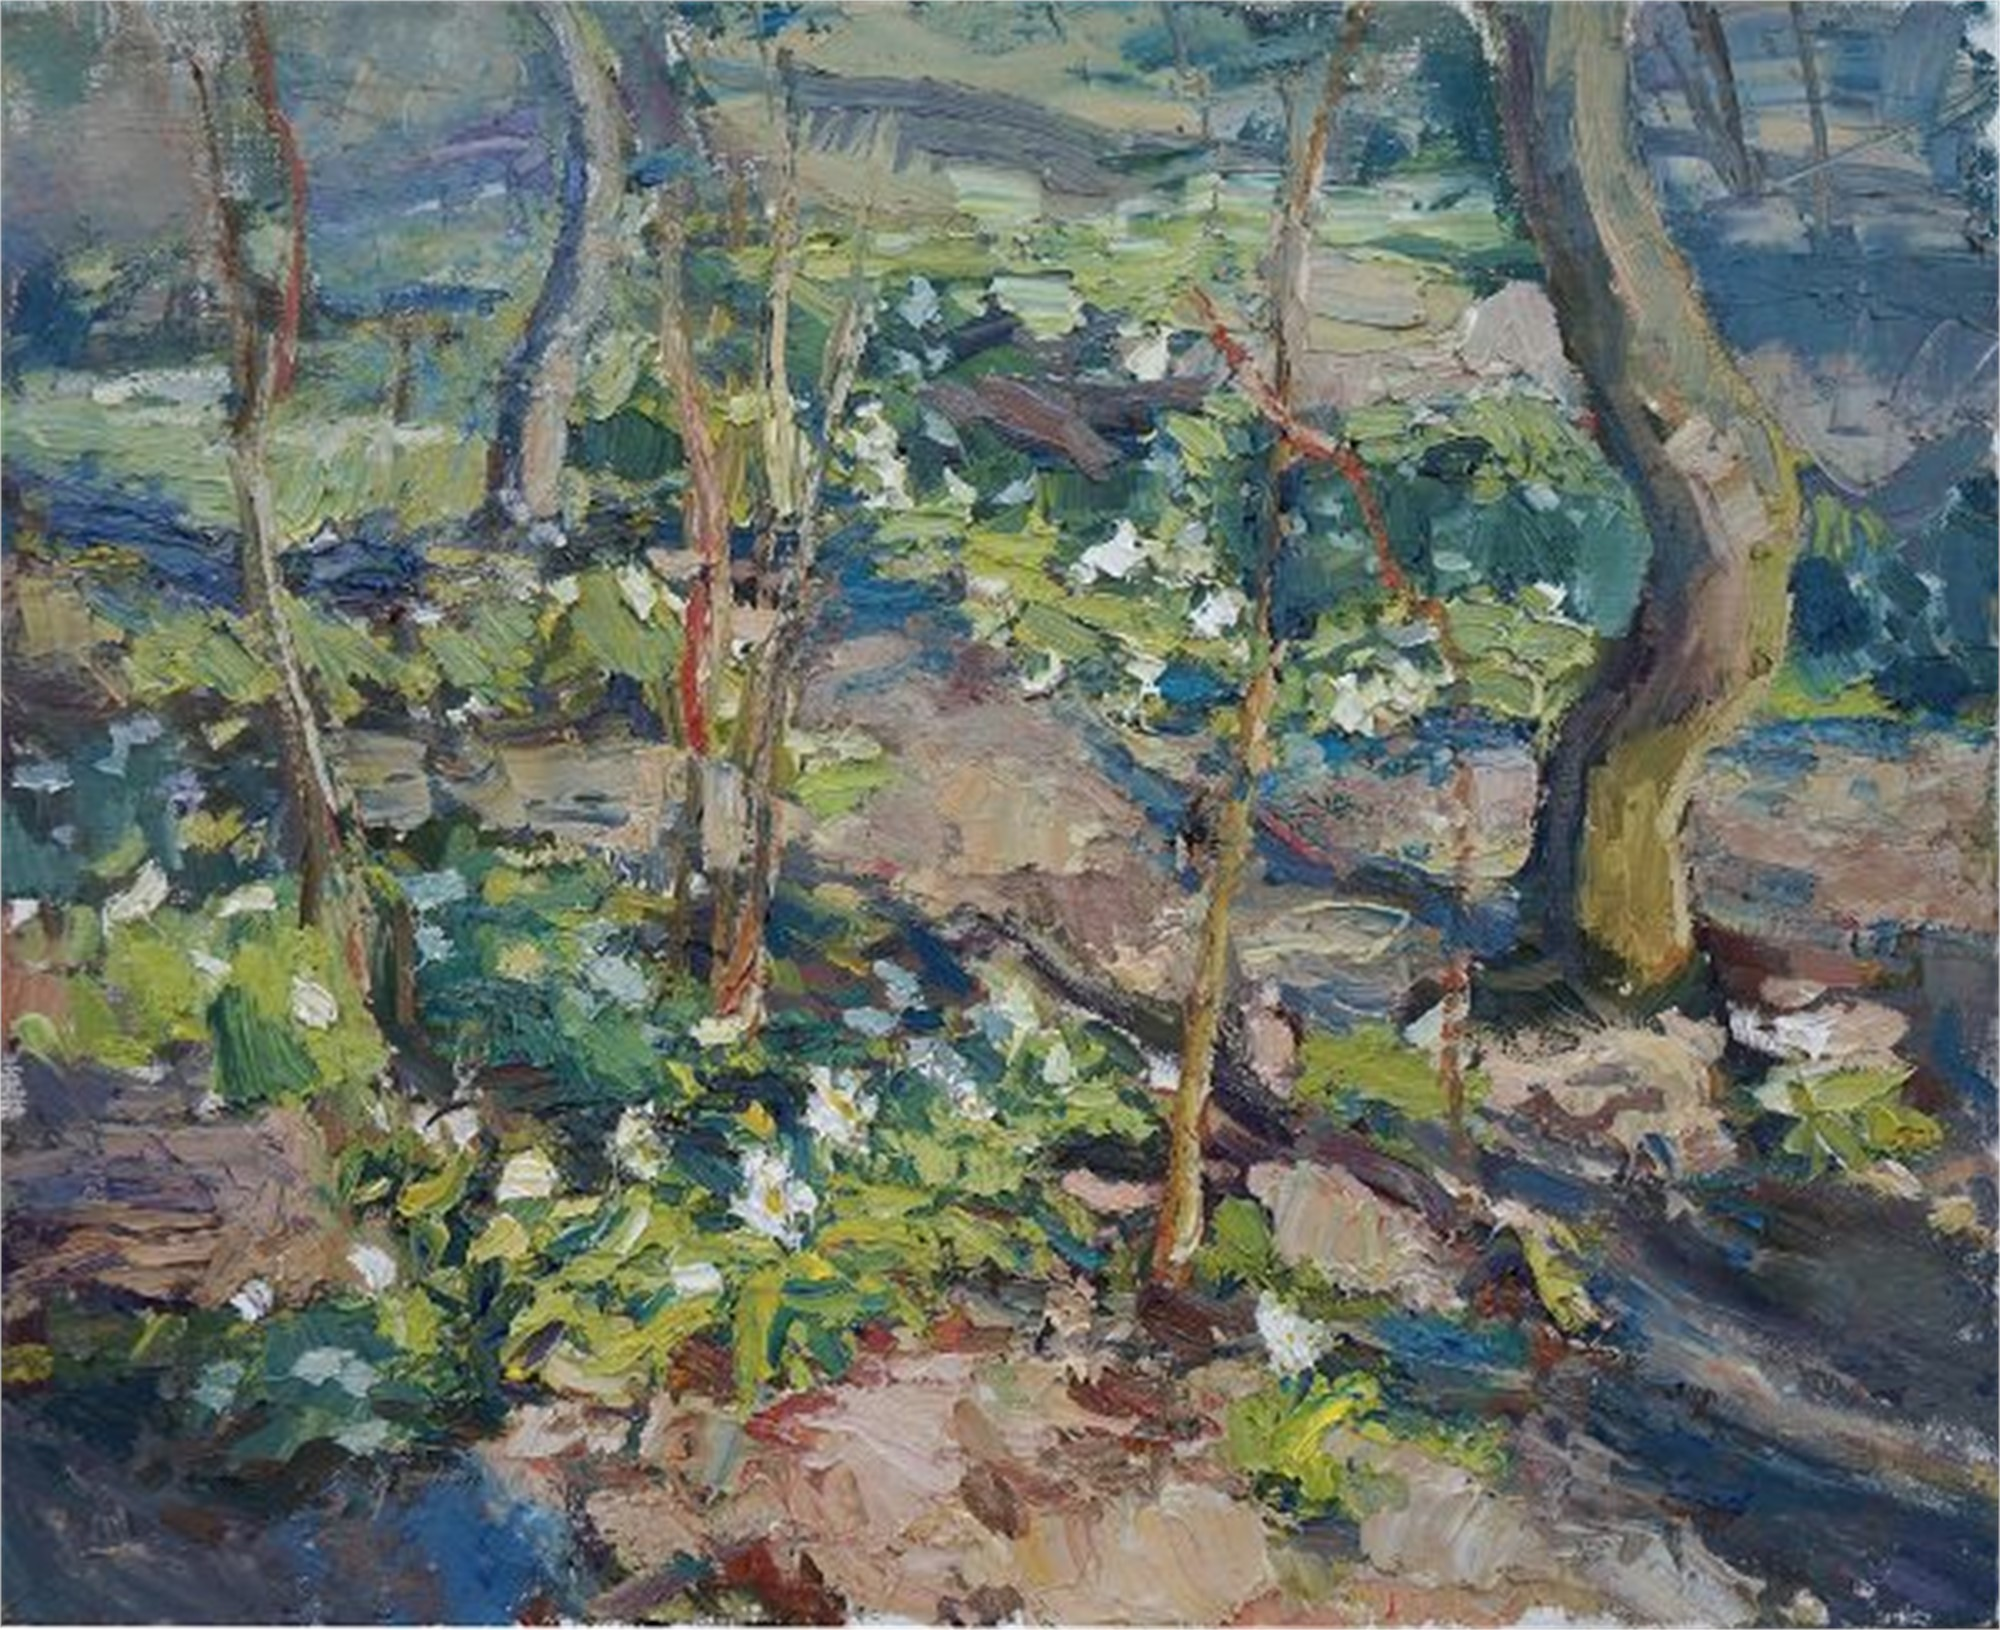 Forest Floor in Spring by Antonin Passemard